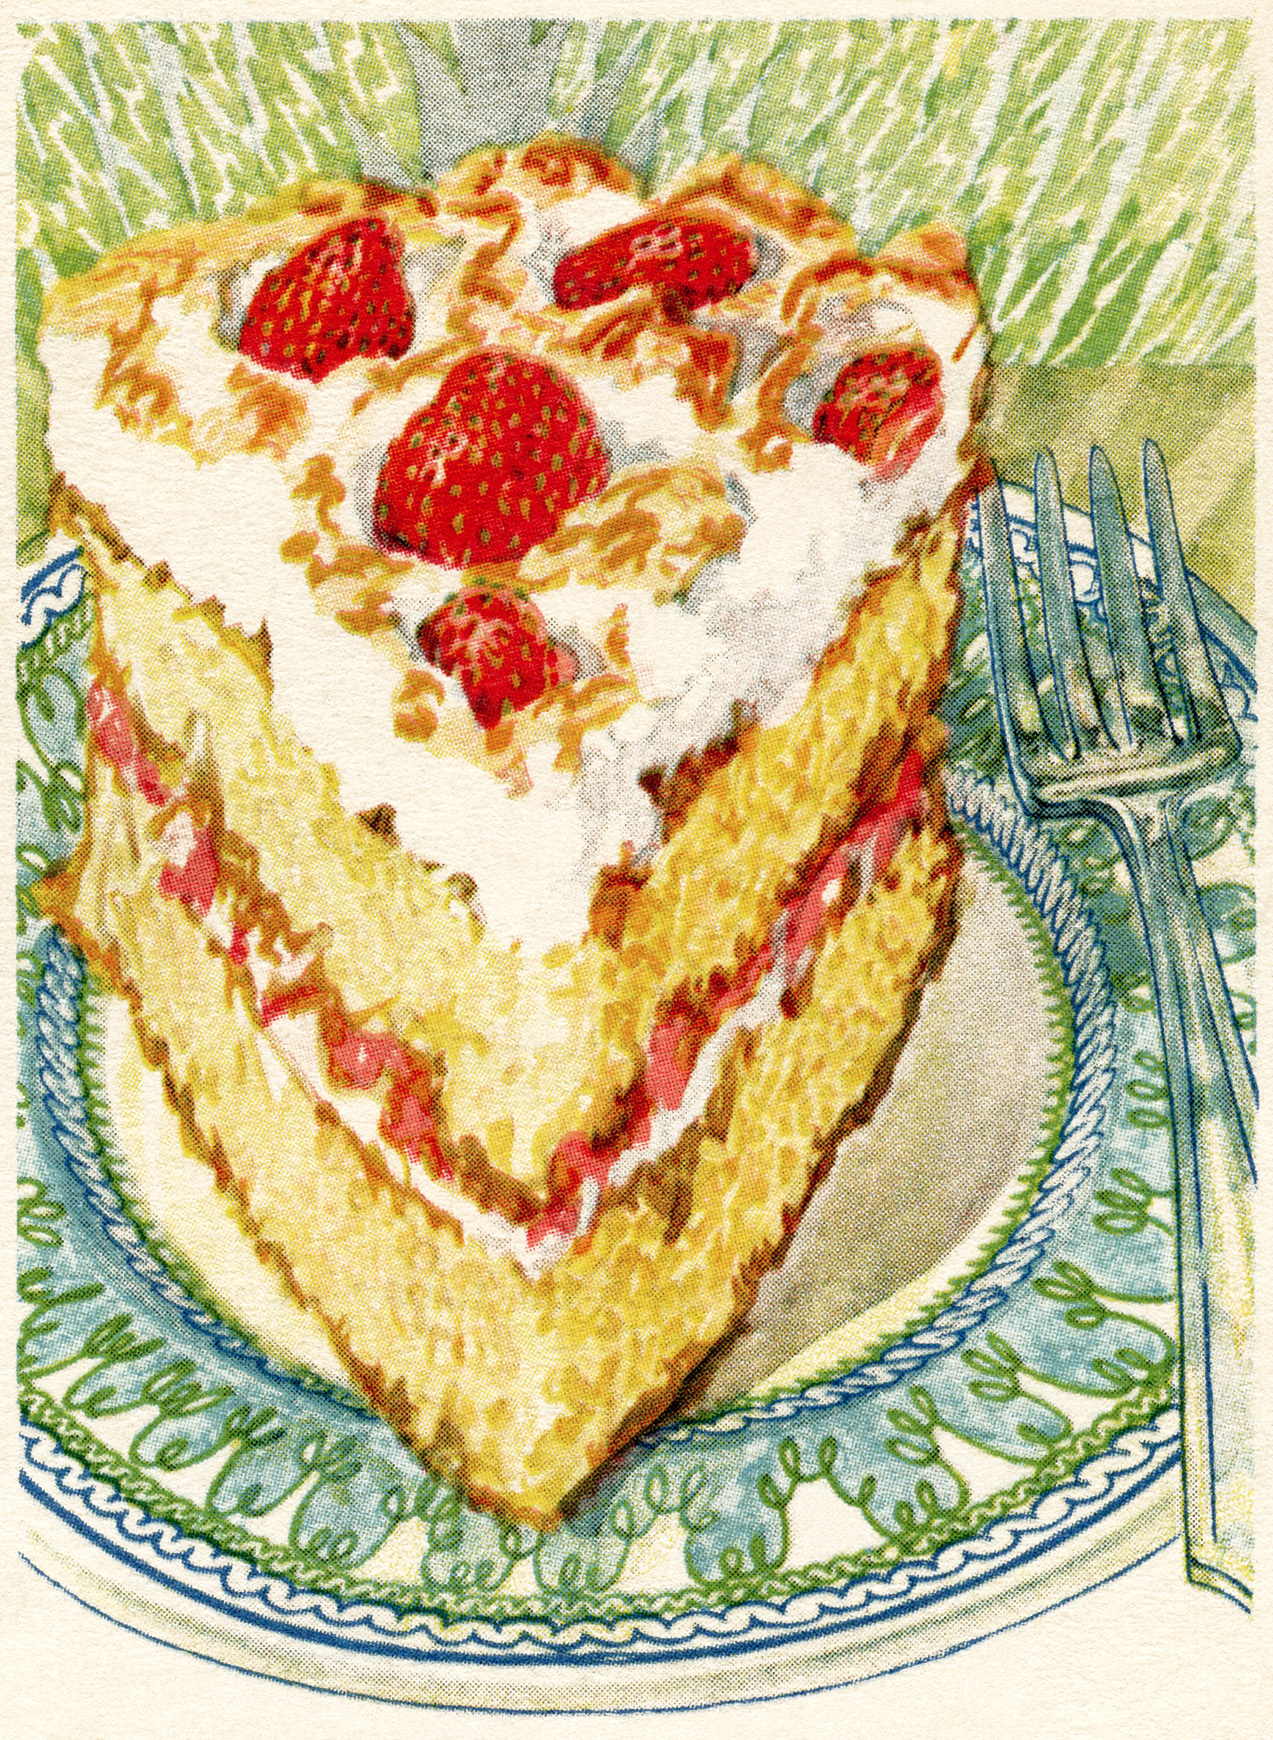 Cake Art Recipes : Strawberry Meringue Cake ~ Free Vintage Graphics Old ...